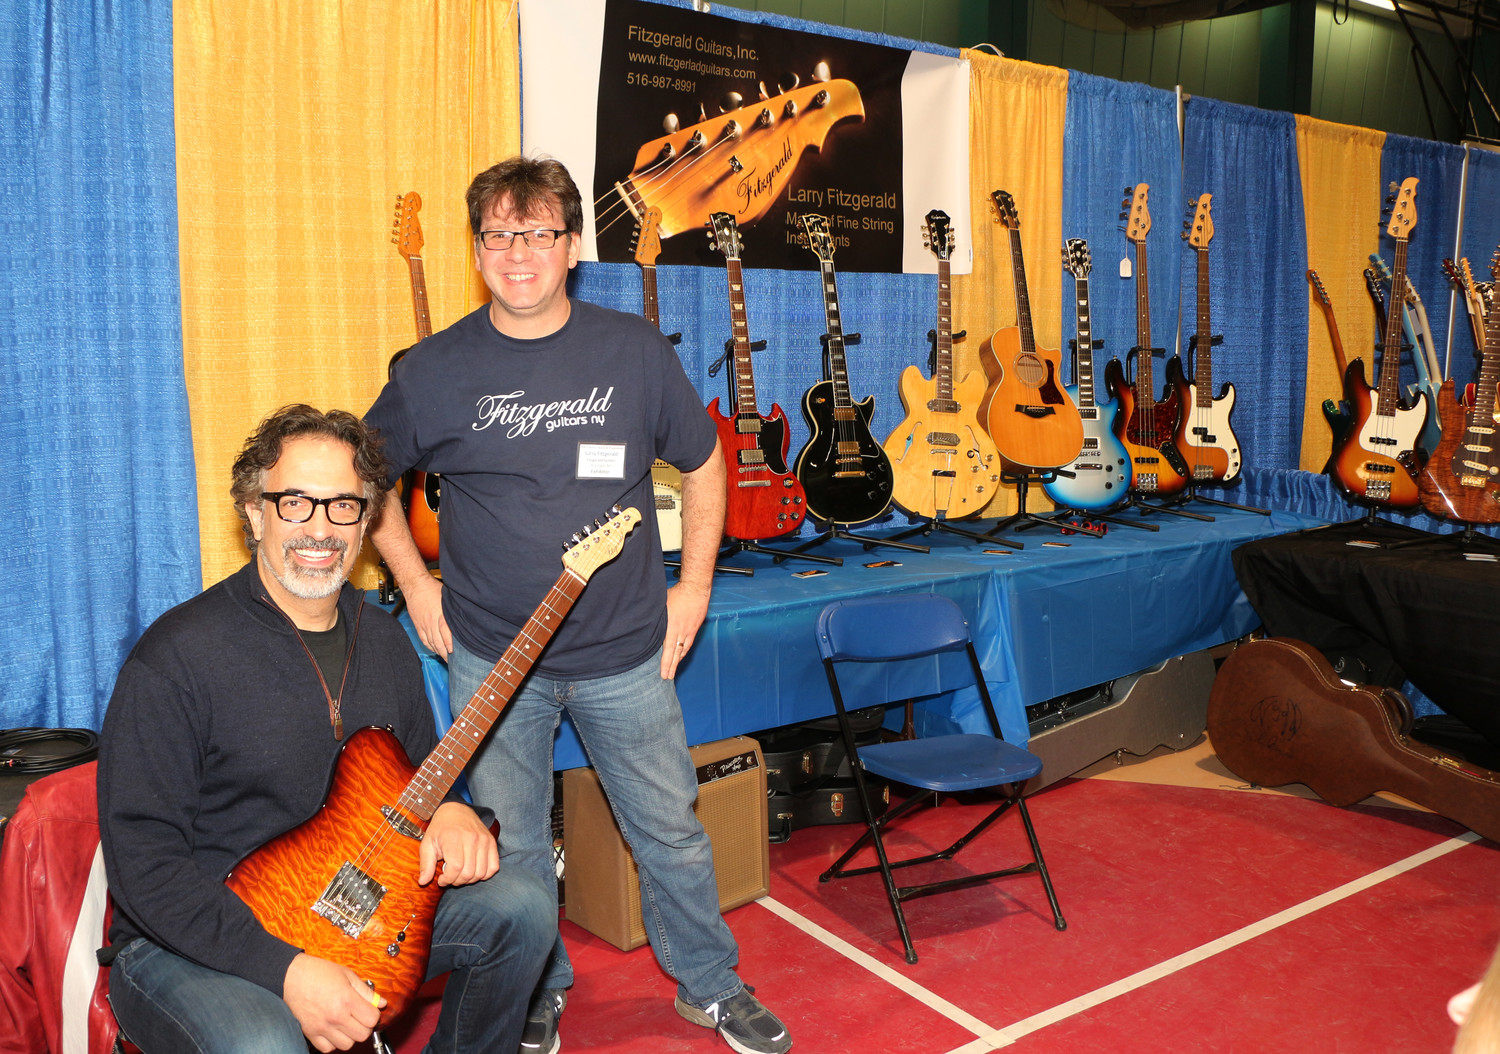 Larry Fitzgerald of Fitzgerald Guitars, a local music instrument store of Wantagh was all smiles with Dennis DelGuardio an attendee of the Guitar Expo held on last Saturday and Sunday at the Freeport Recreation Center.